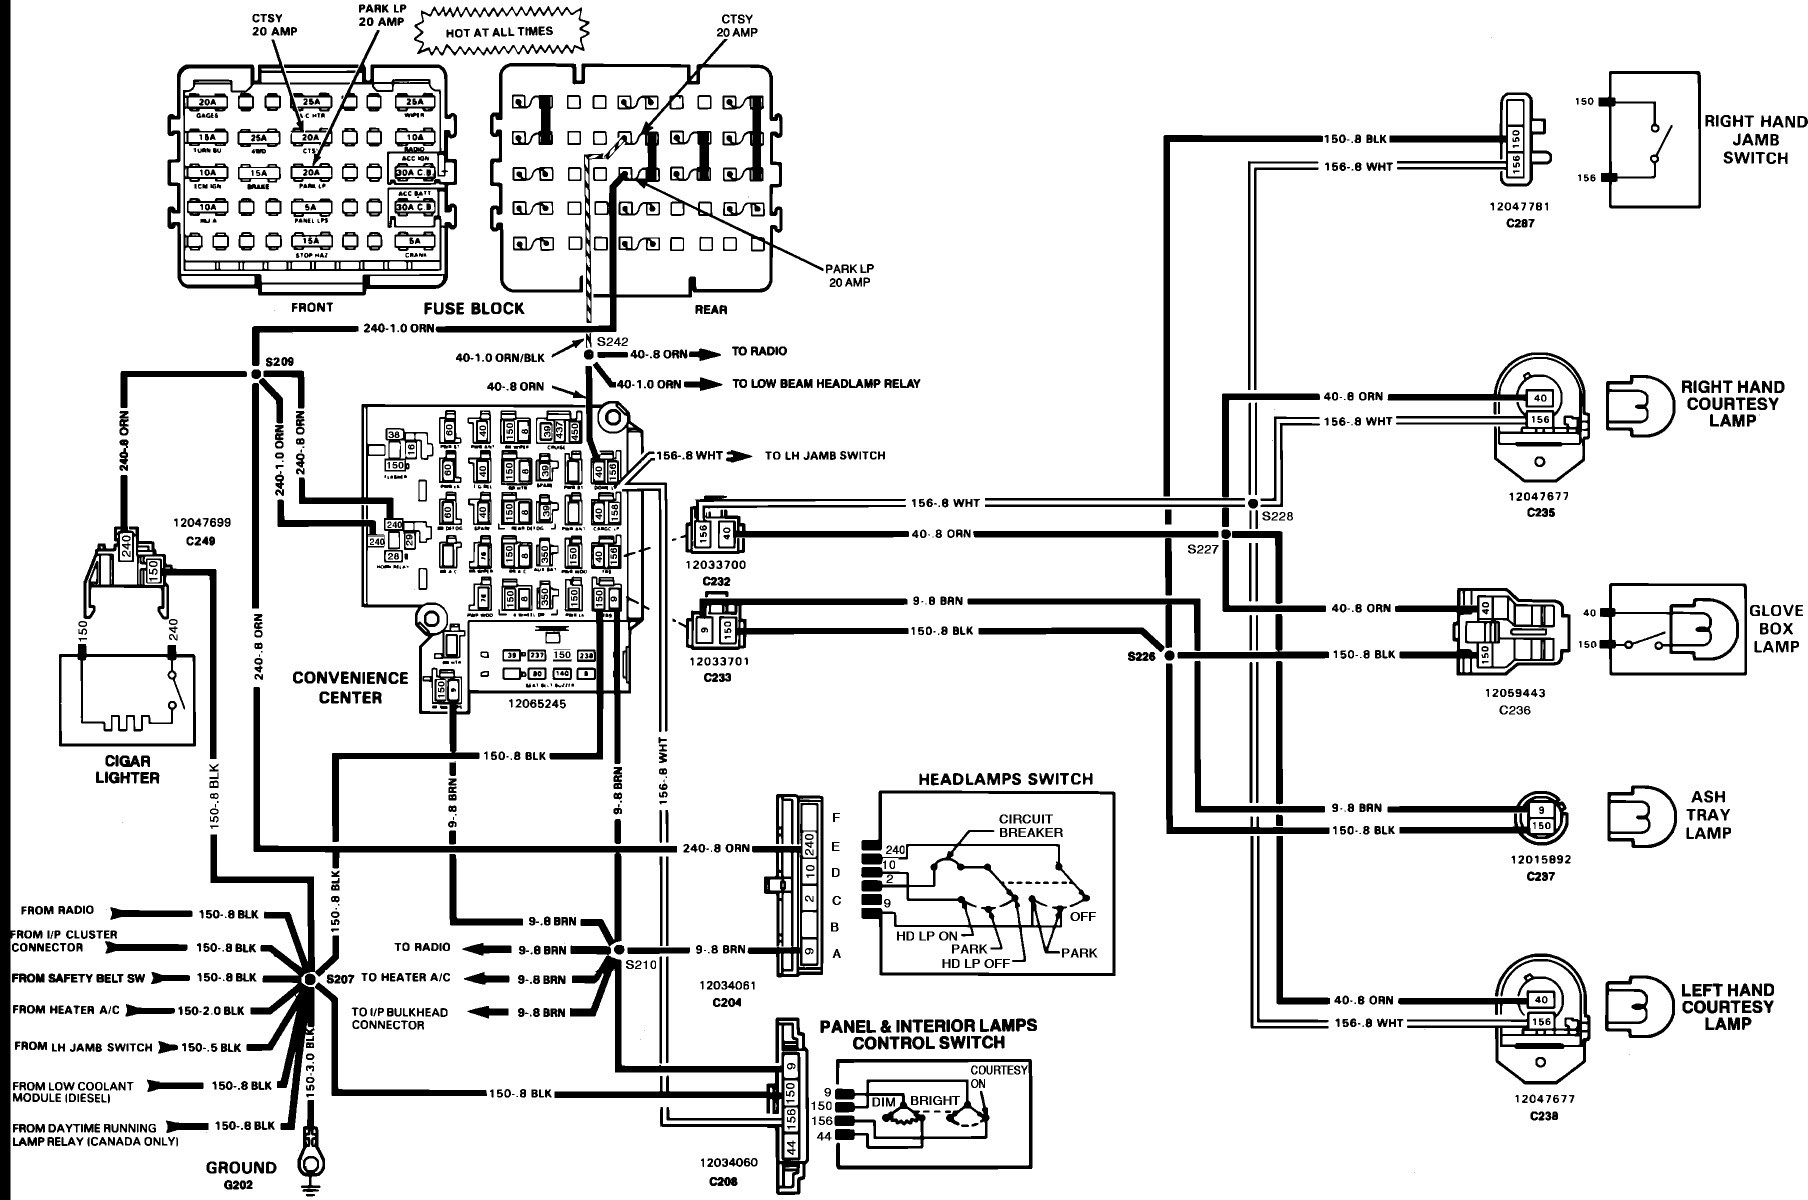 1977 Ford F150 Wiring Diagram Will Be A Thing 1979 F 150 Radio For 1992 Gmc Yukon Portal 77 Truck Ignition